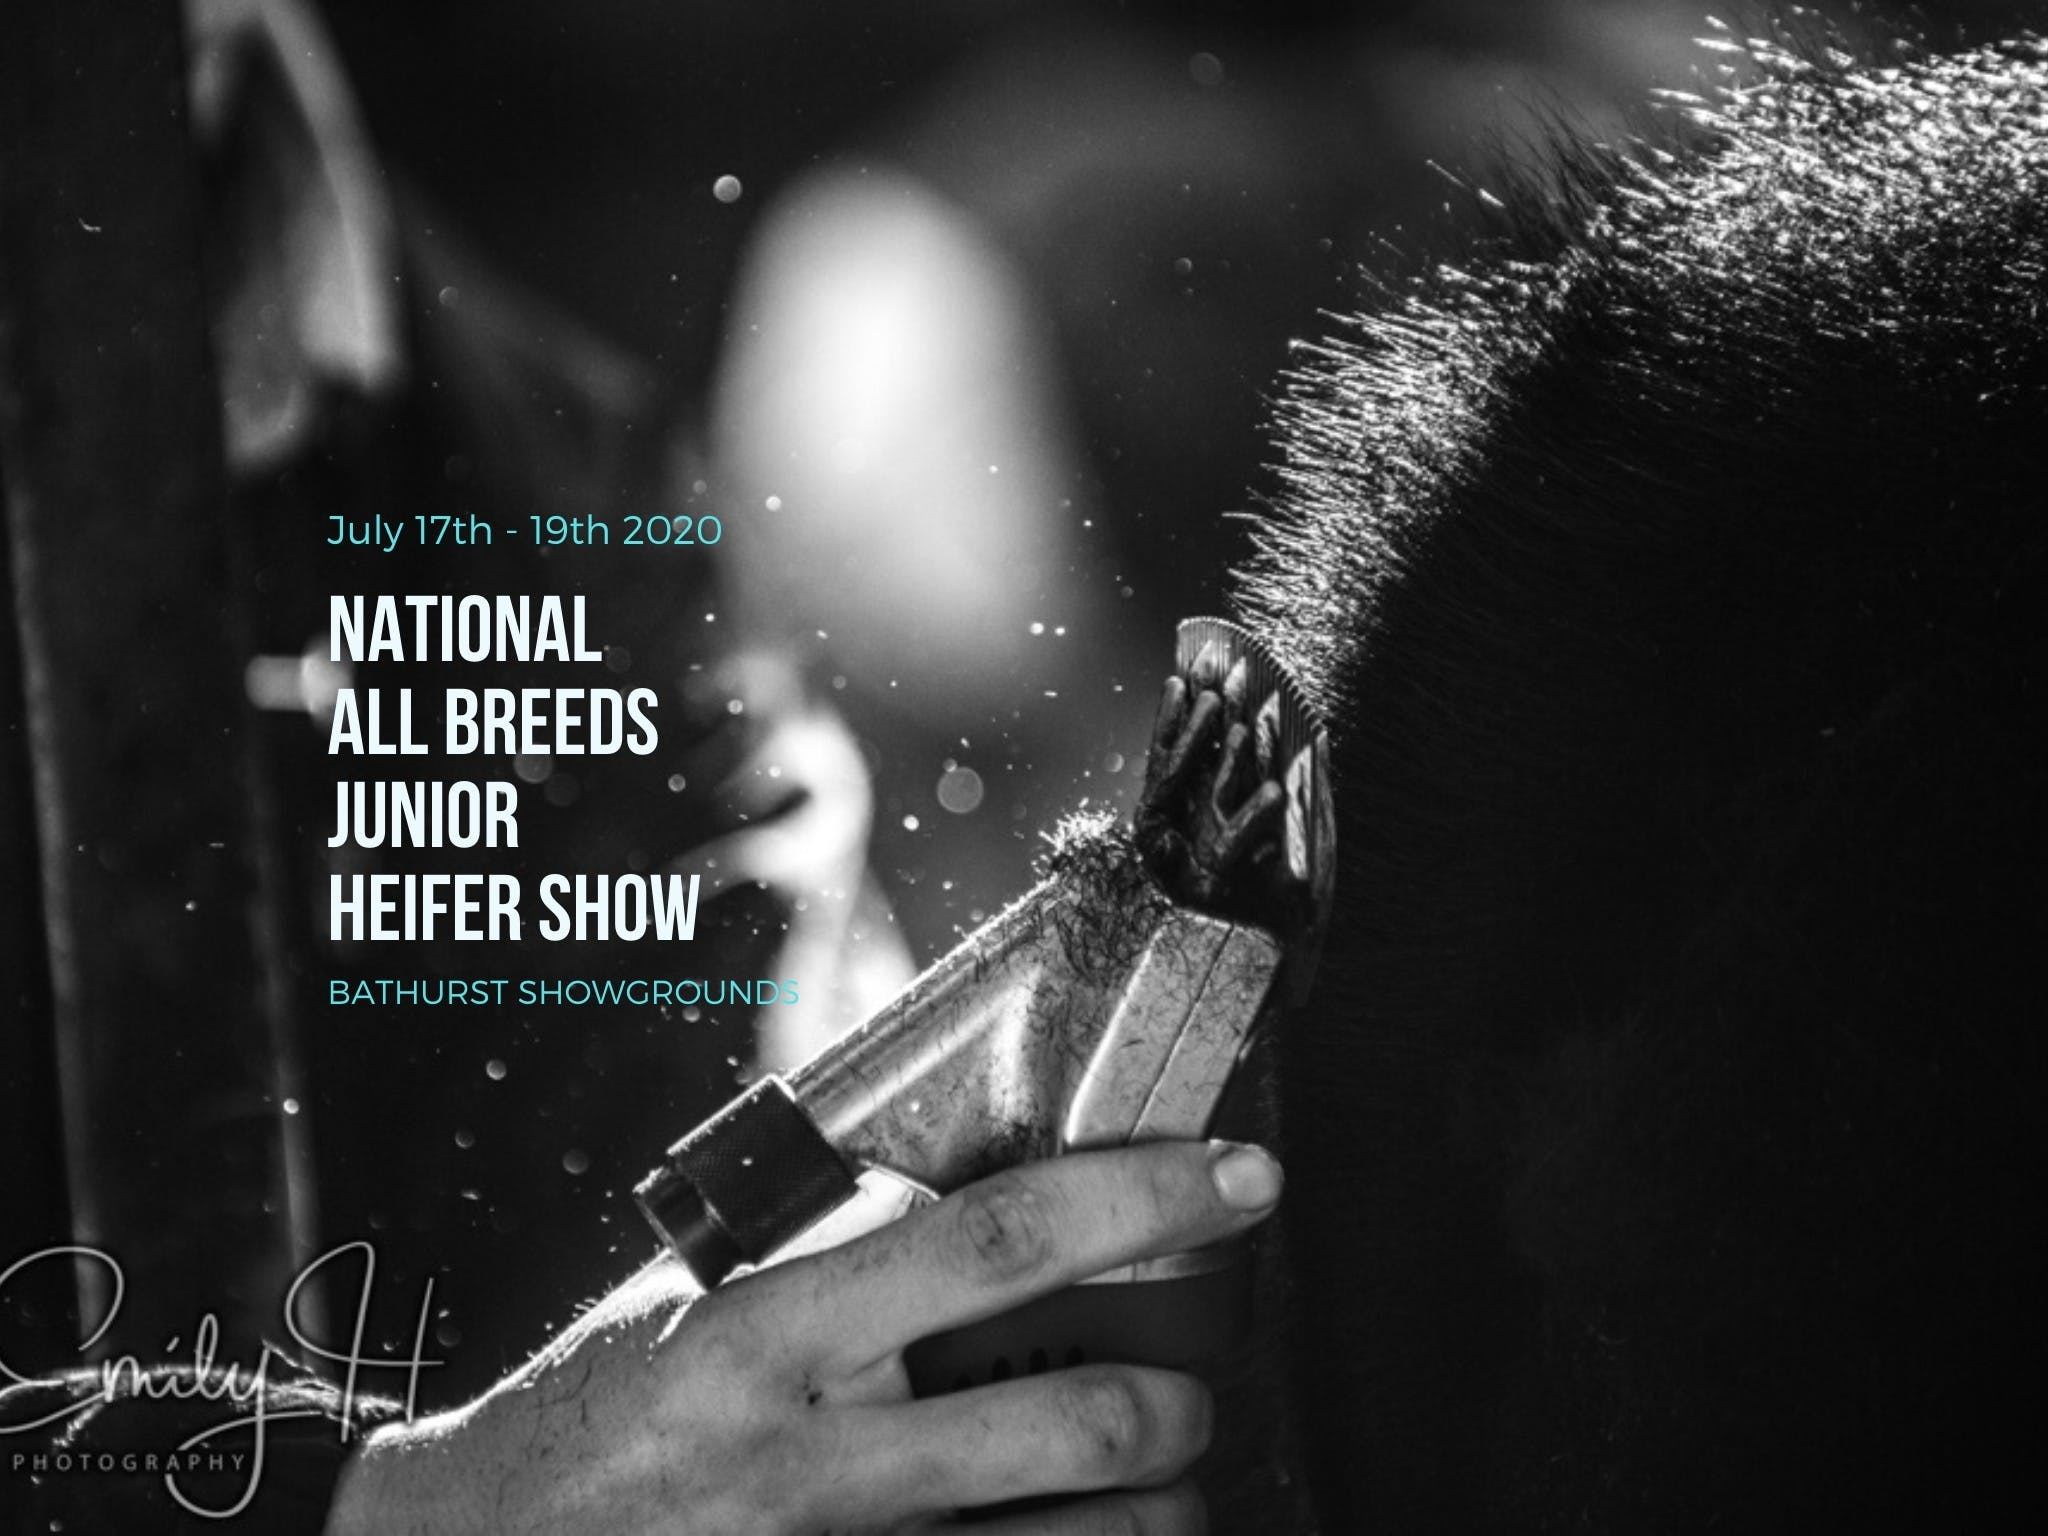 National All Breeds Junior Heifer Show - Restaurant Find